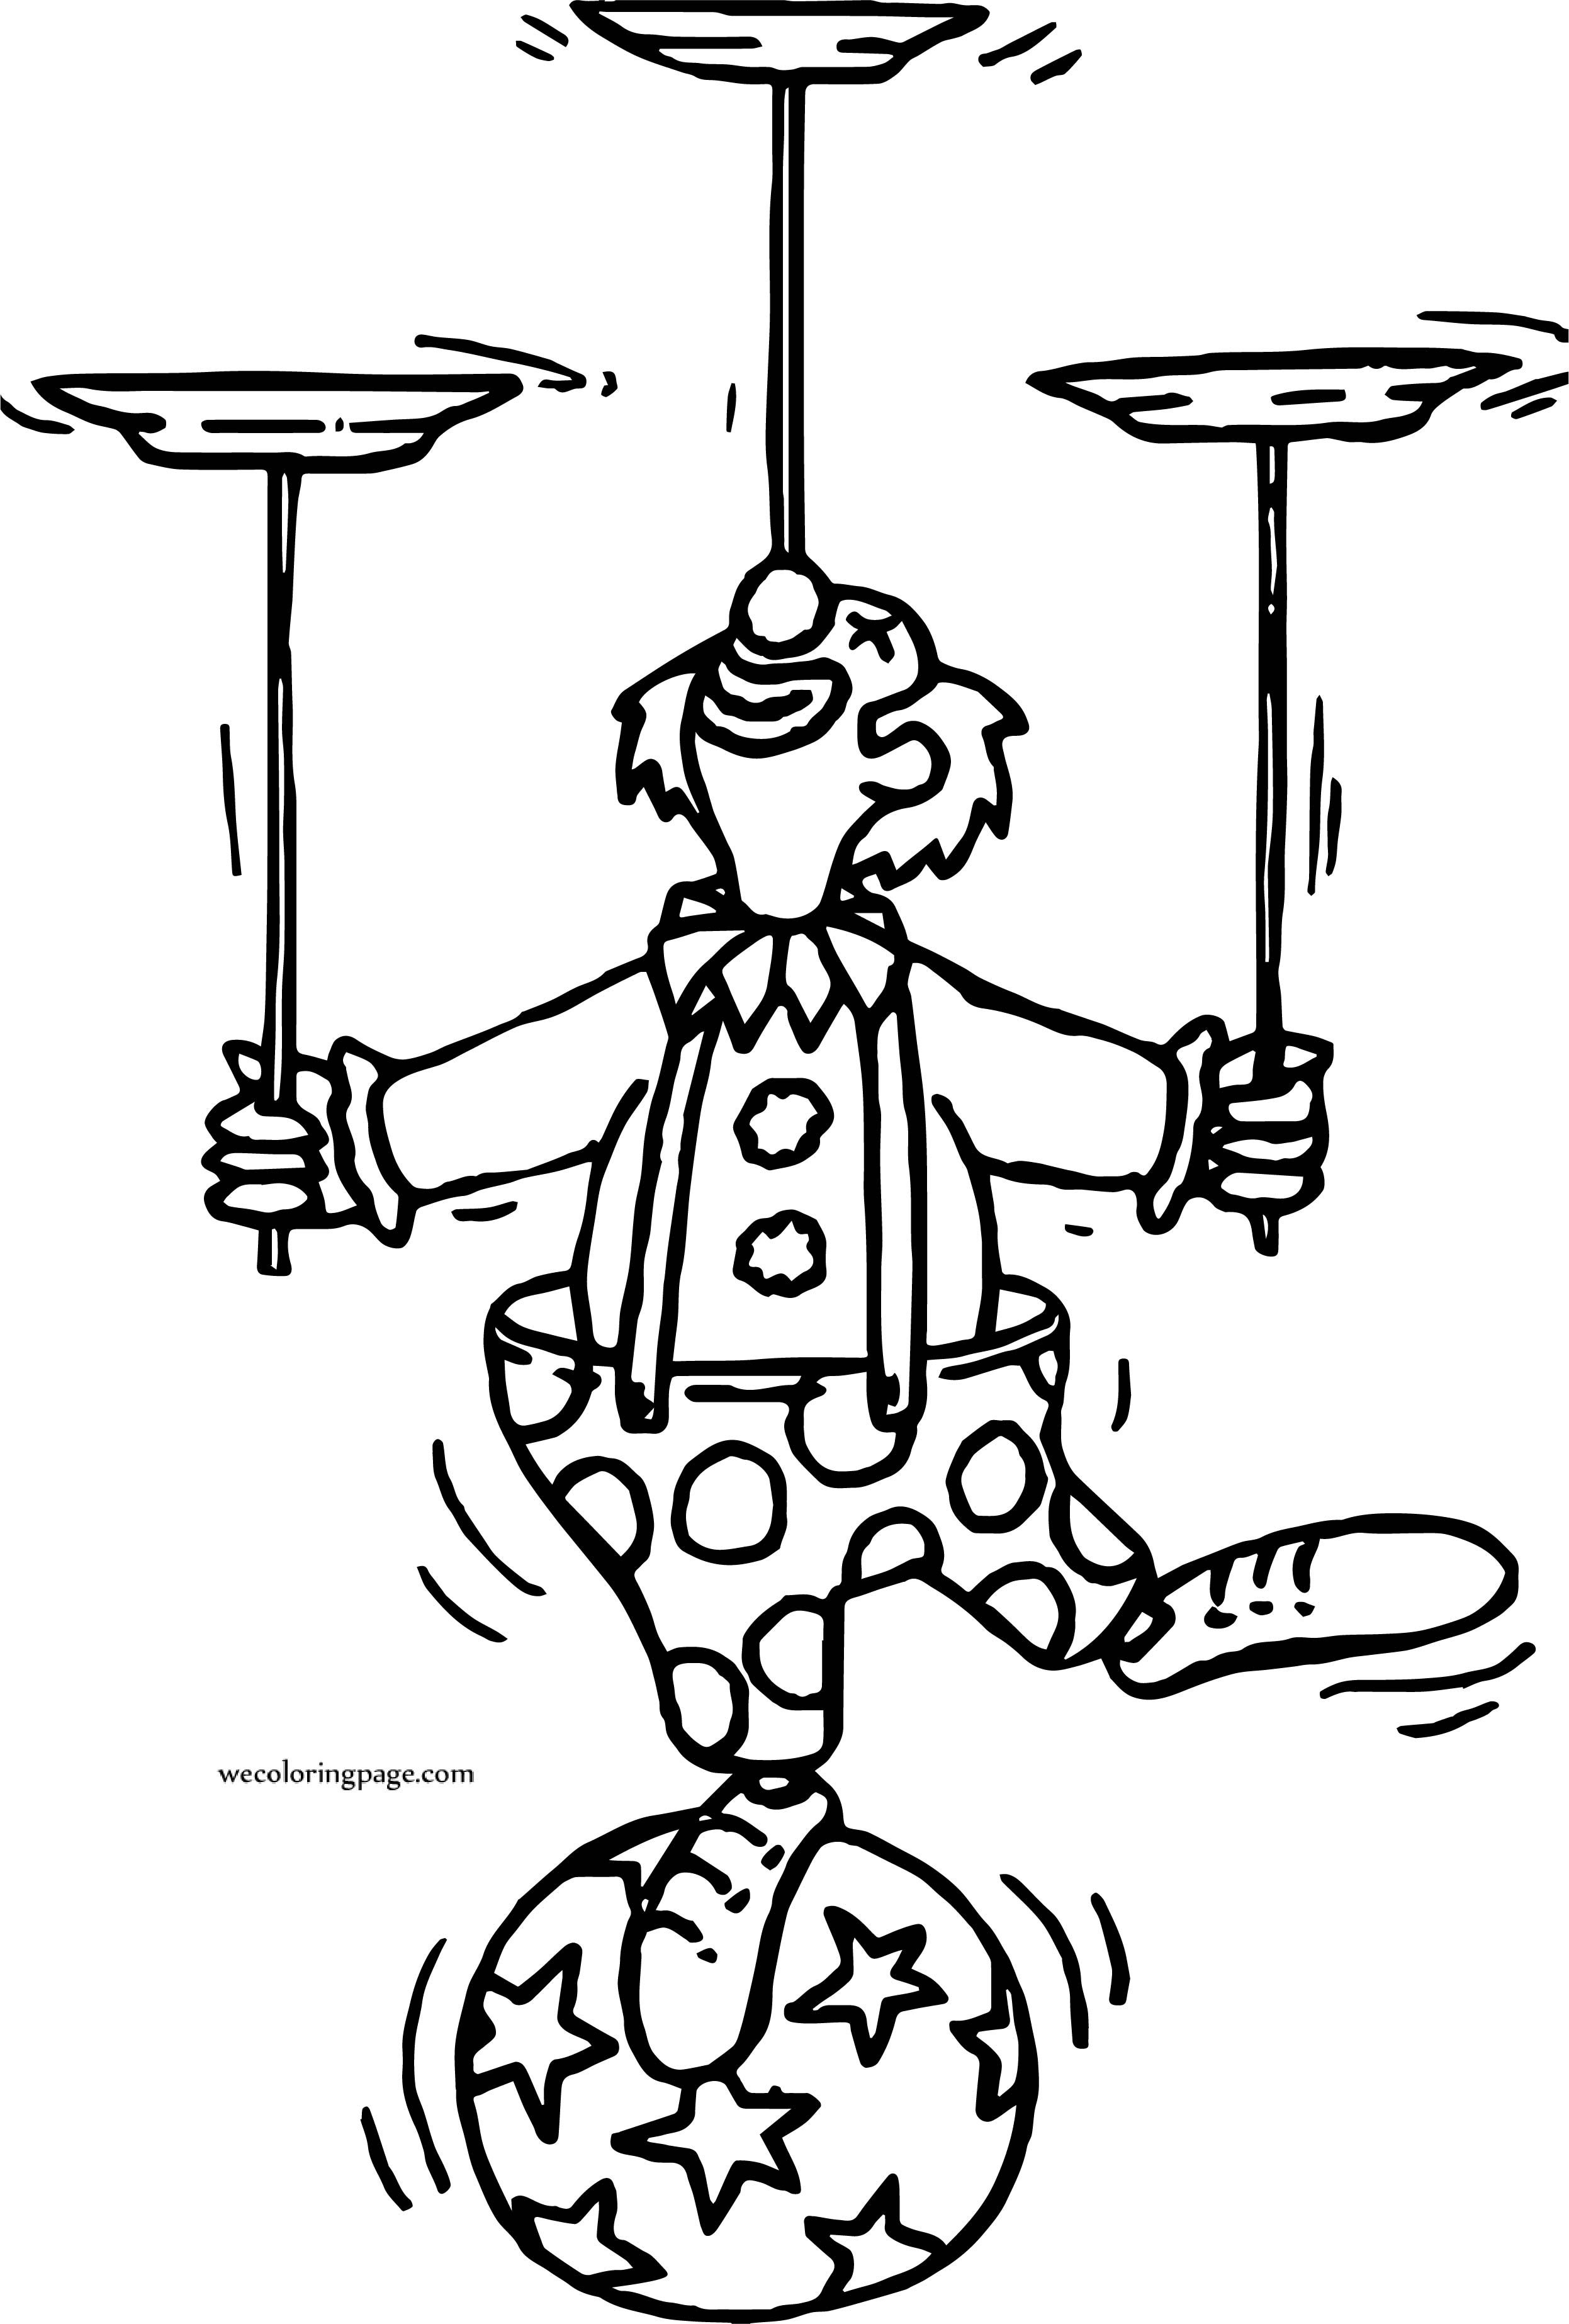 Clown Ball Plates Coloring Page